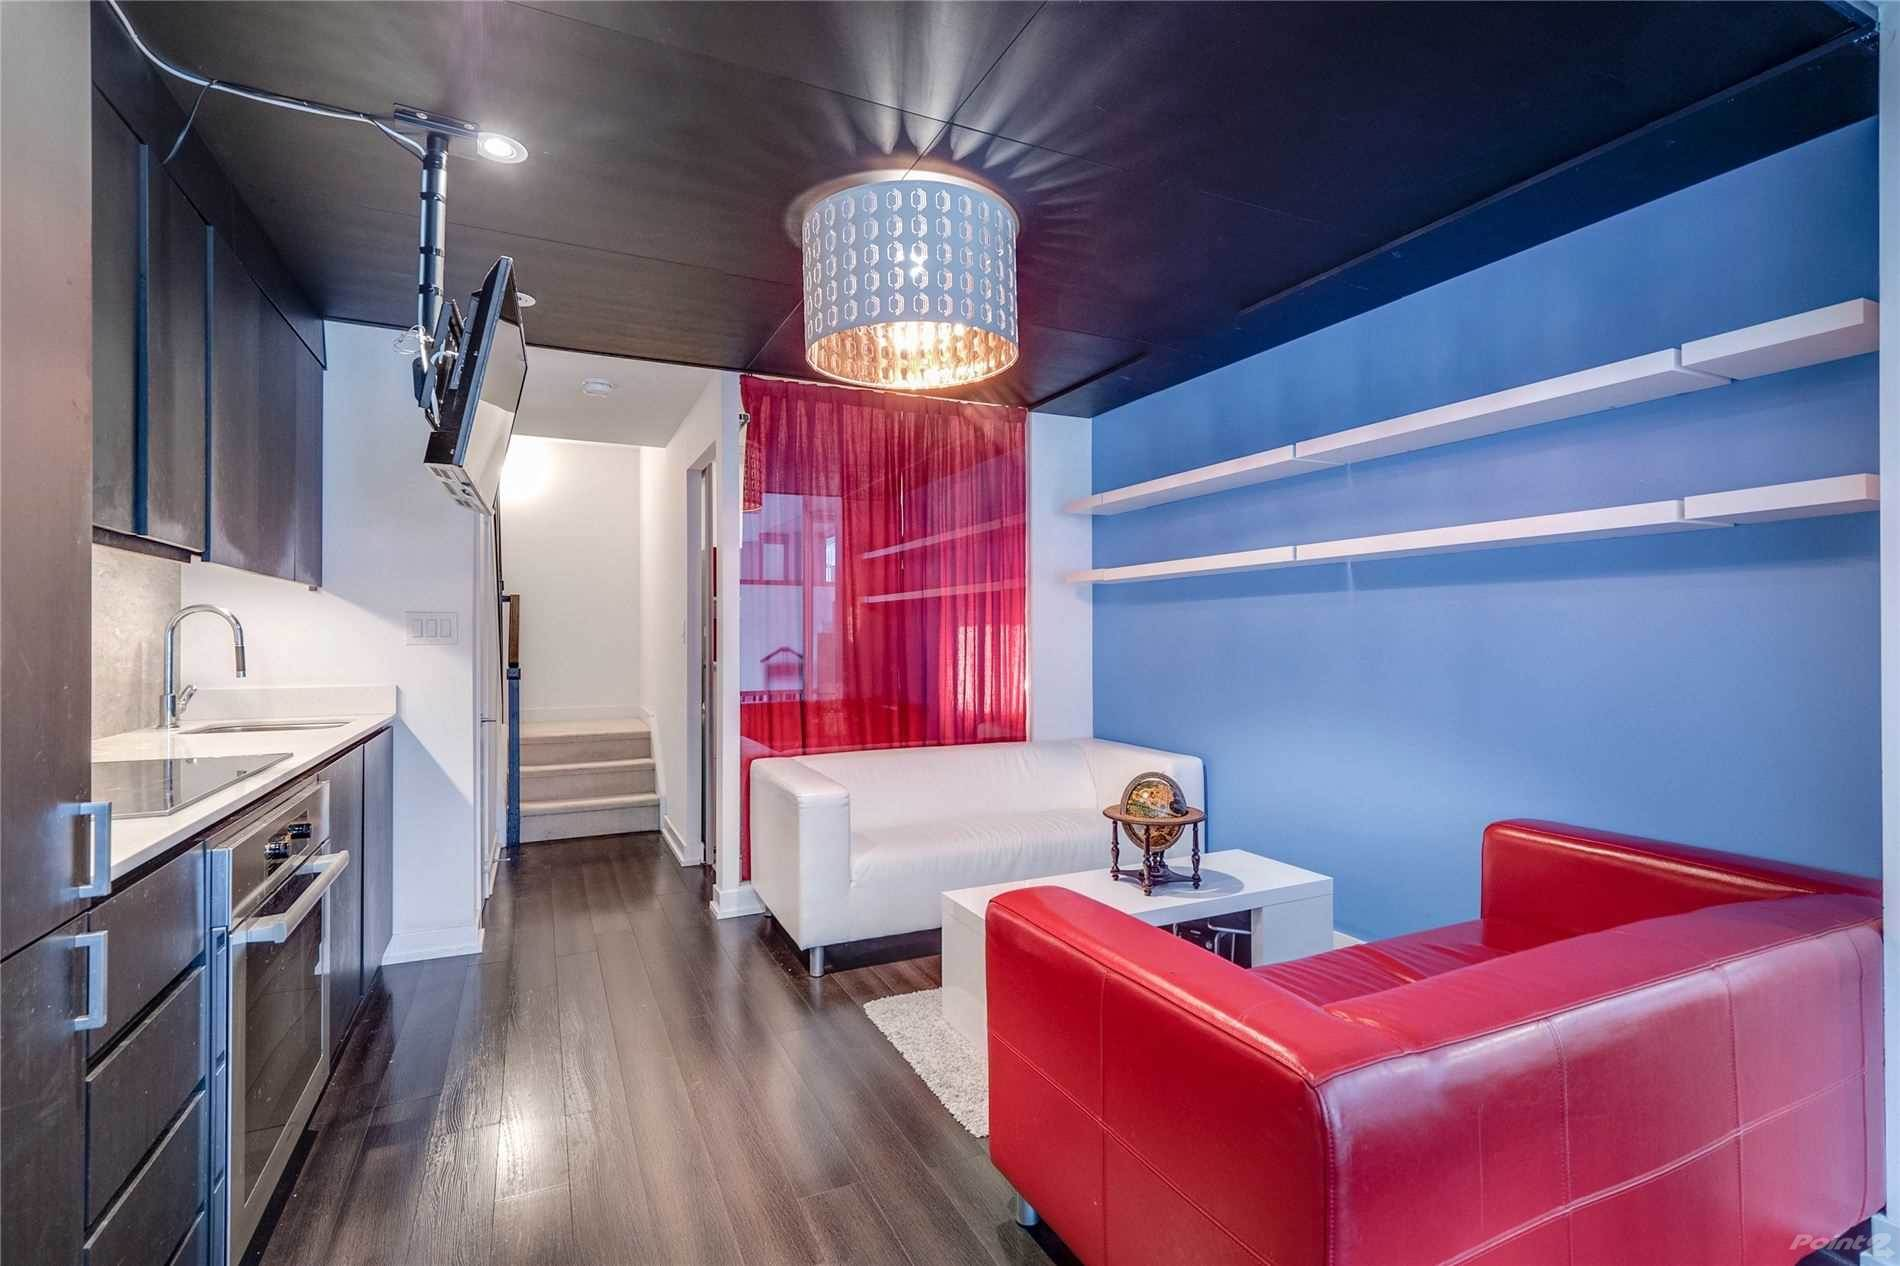 Residential For Sale in 112 Fort York Blvd Toronto ON CA, Toronto, Ontario   , Canada